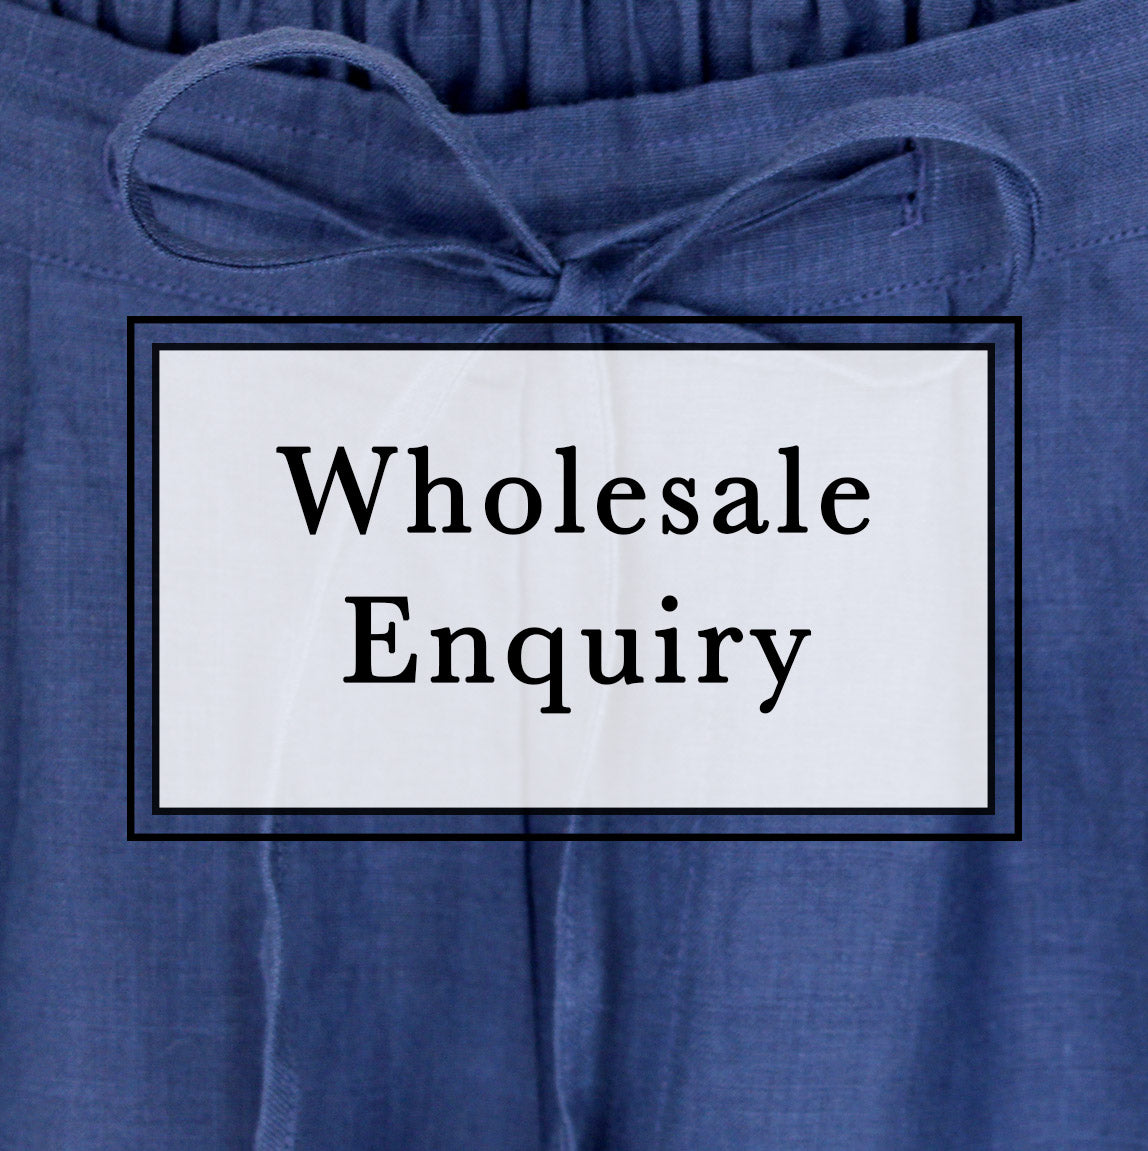 Wholesale Enquiry